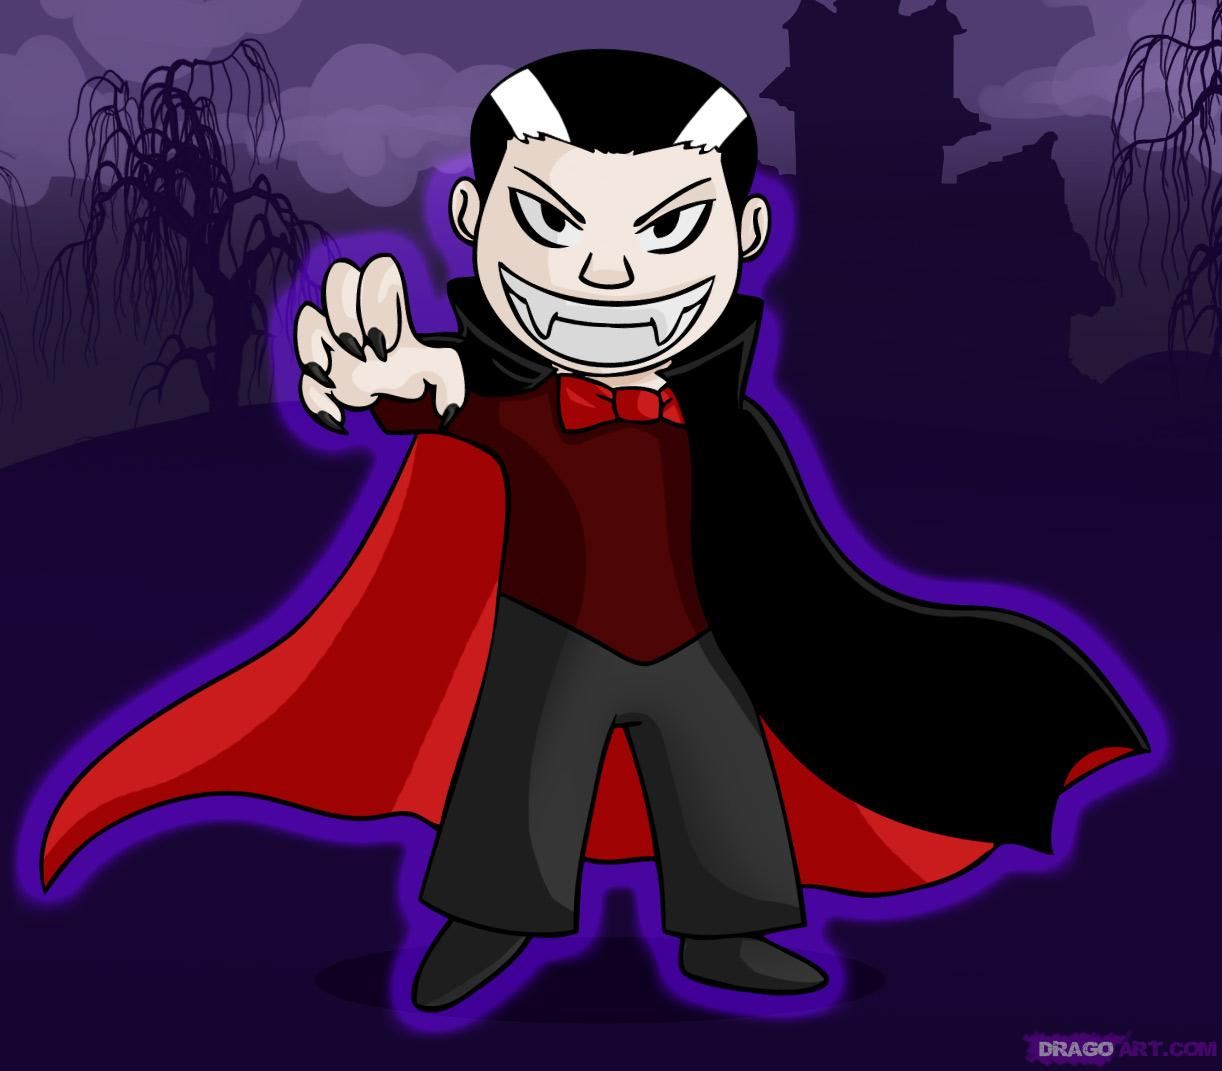 Drawn vampire funny cartoon A by Monsters vampire a